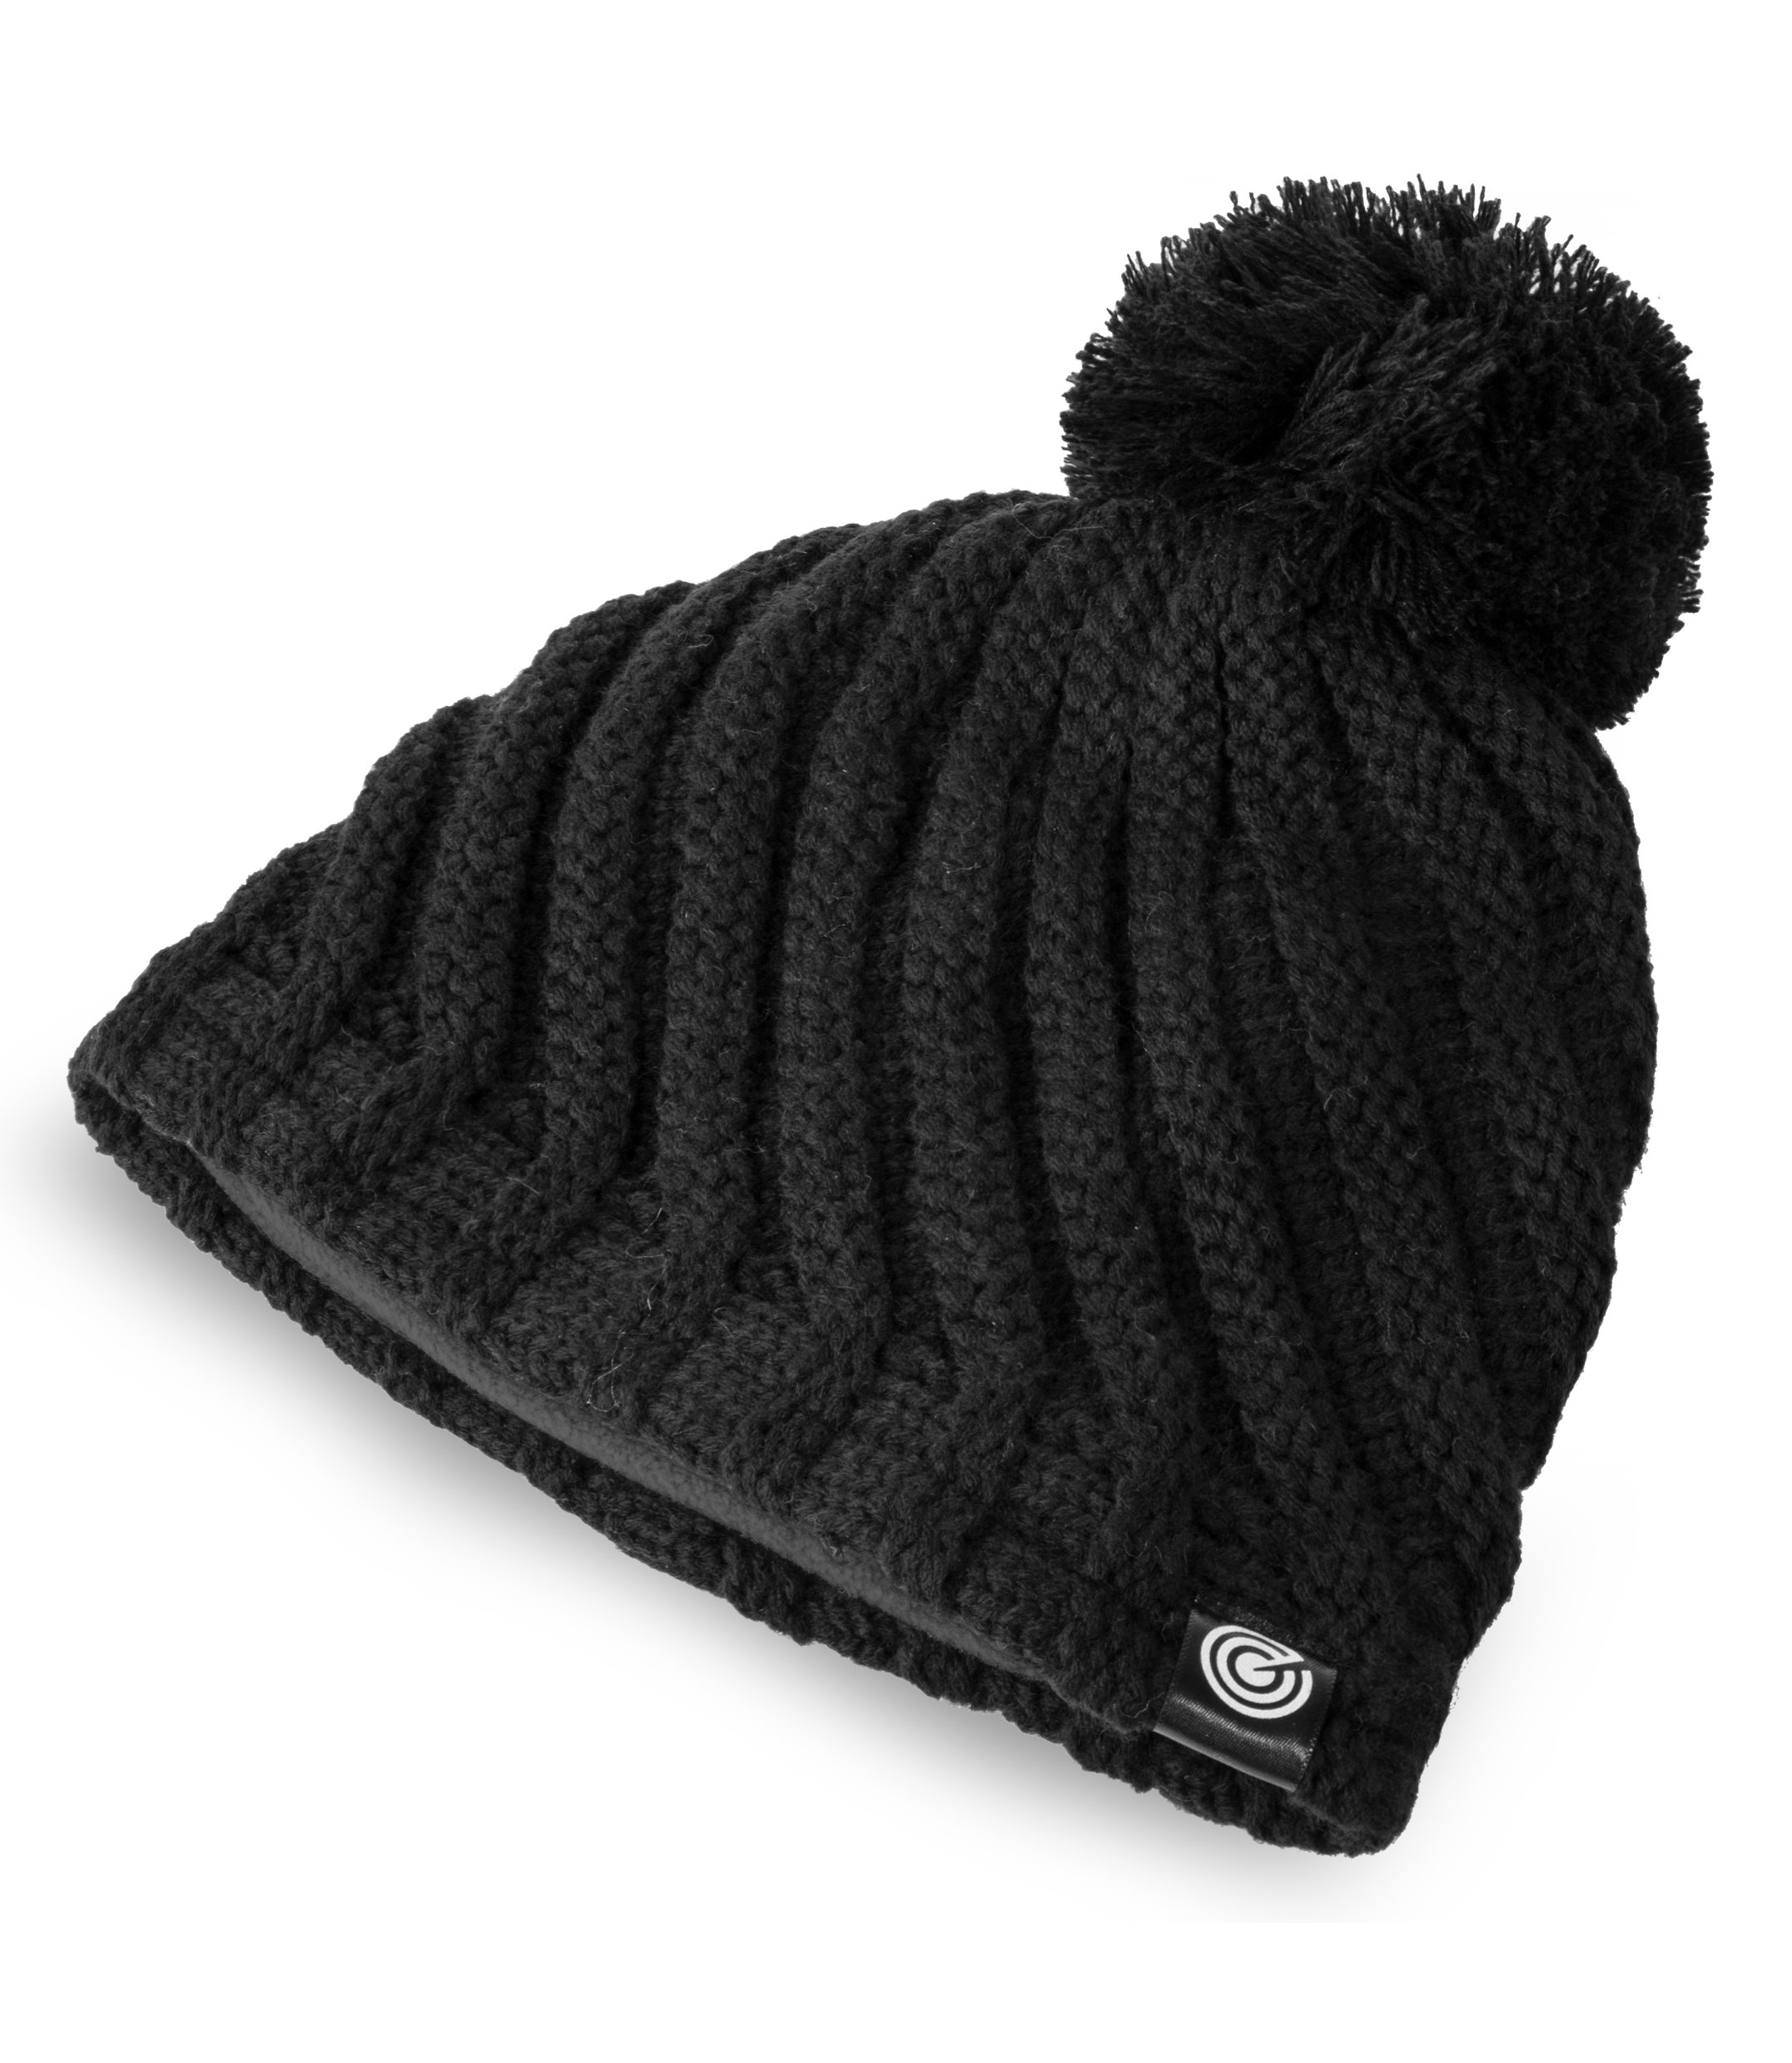 Evony Womens Ribbed Pom Beanie Hat with Warm Fleece Lining - Black - One Size